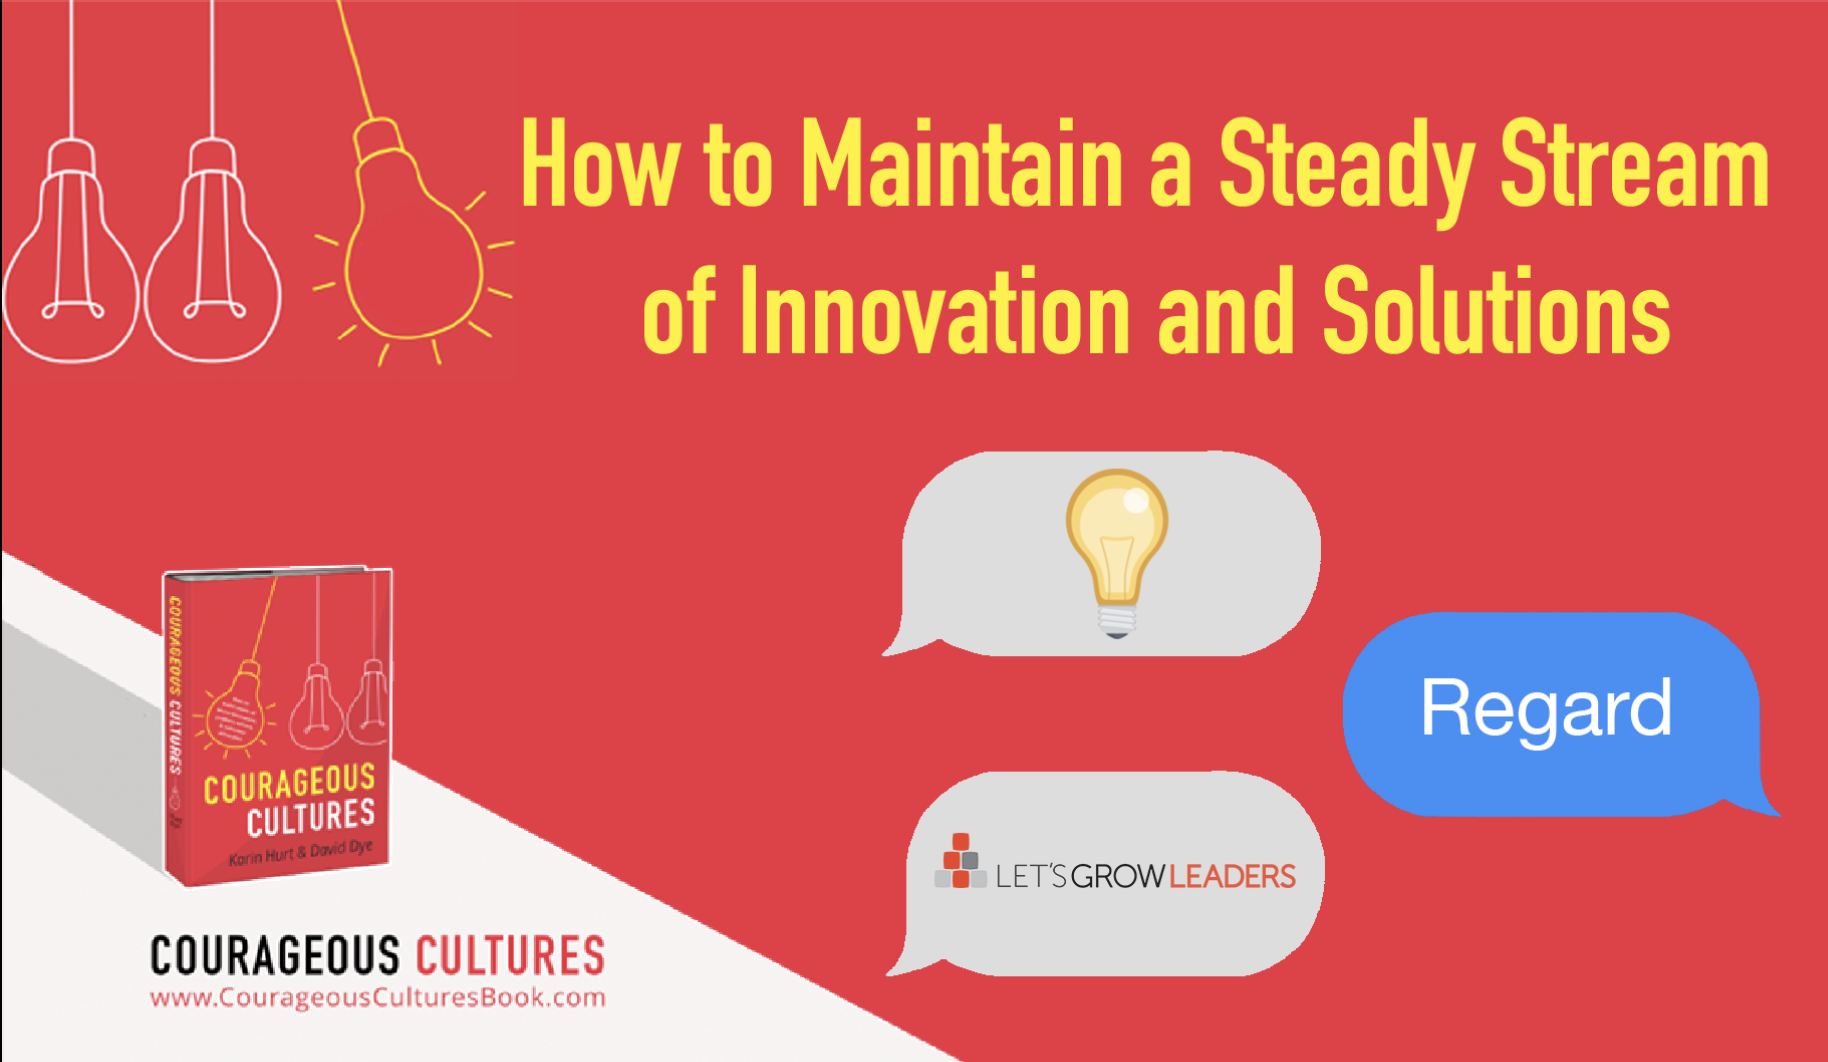 Respond with regard for innovation and solutions